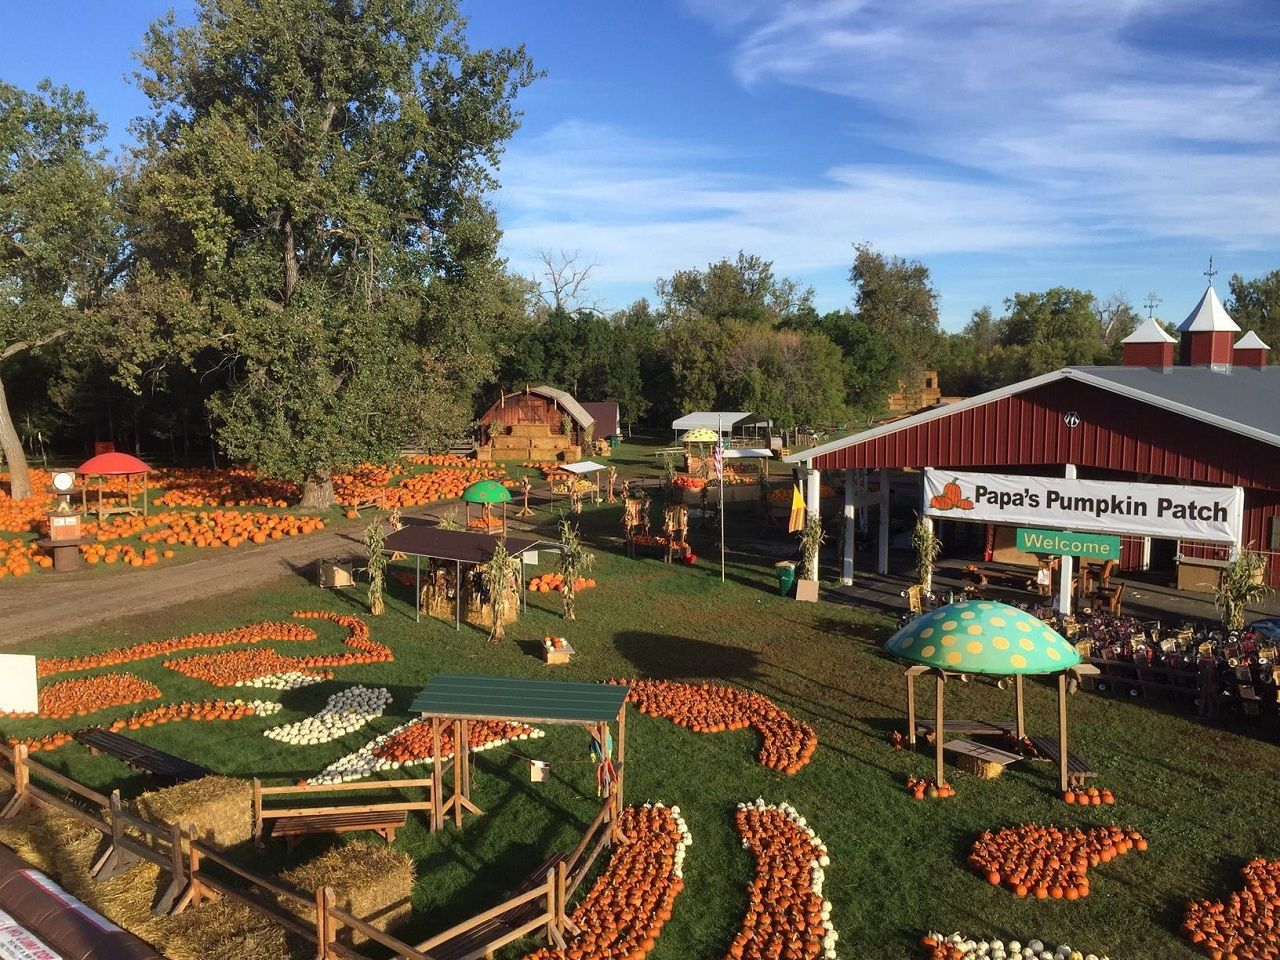 Best pumpkin patches in the US